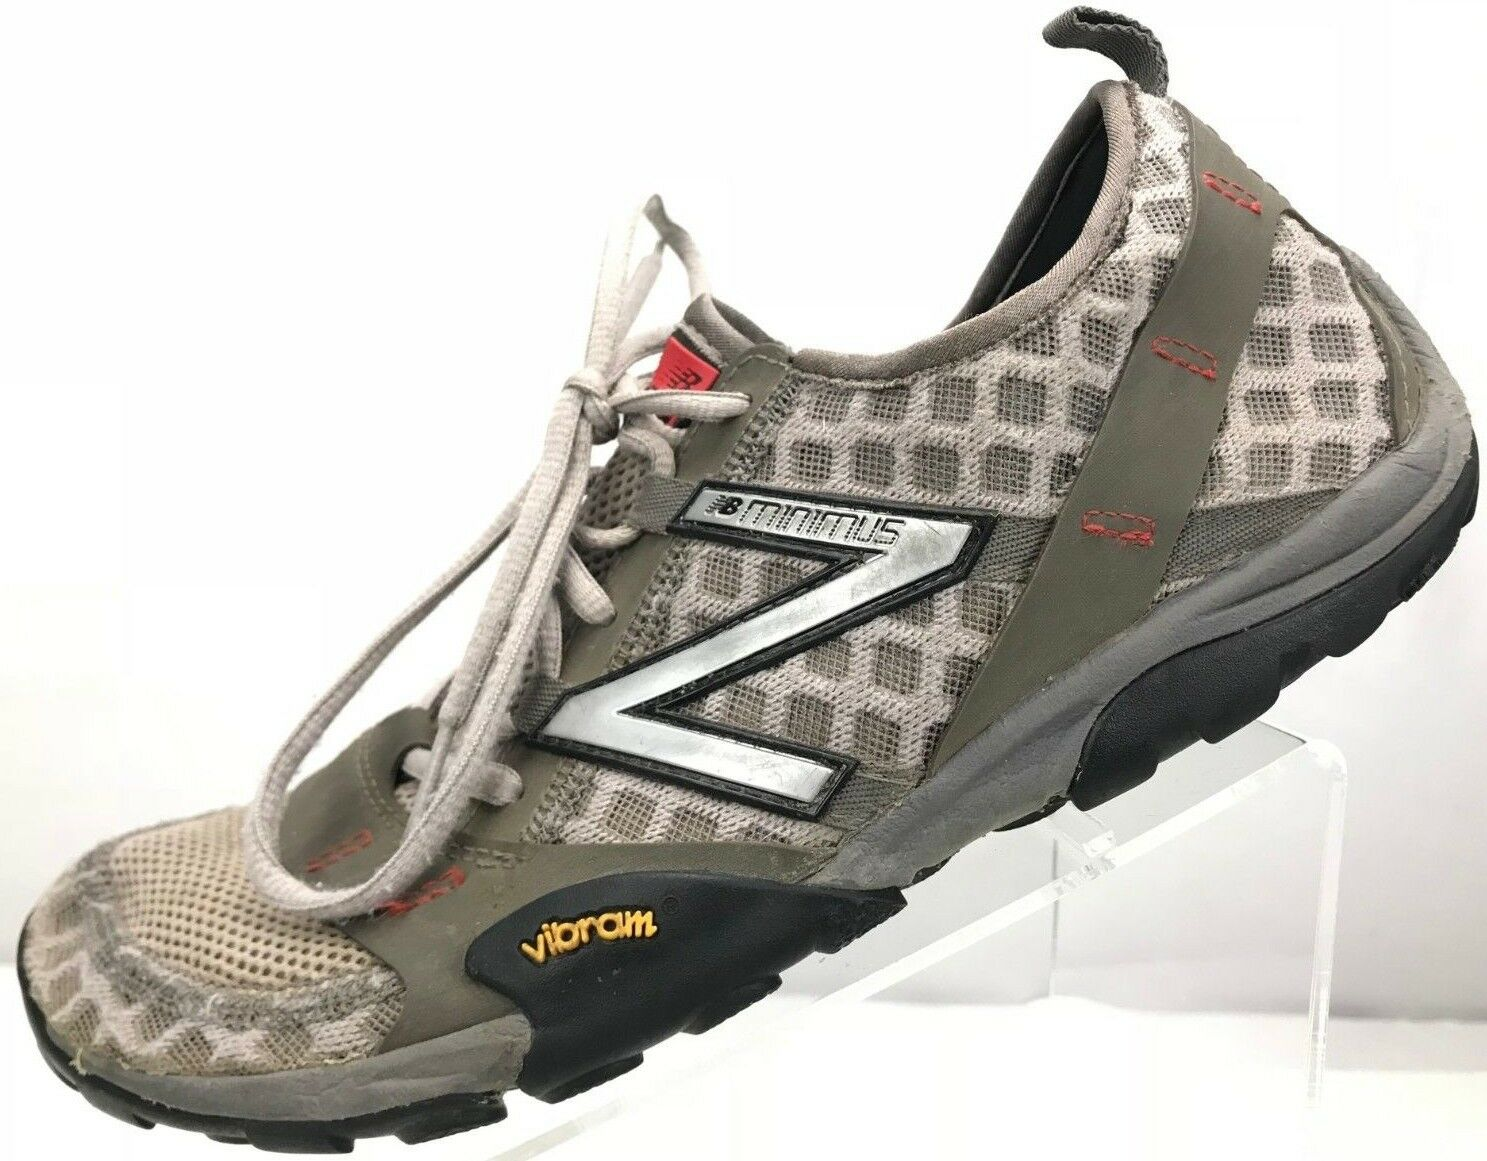 New Balance Minimus 10v3 Trail - Running Athletic Sneakers Women's 9.5 B Olive